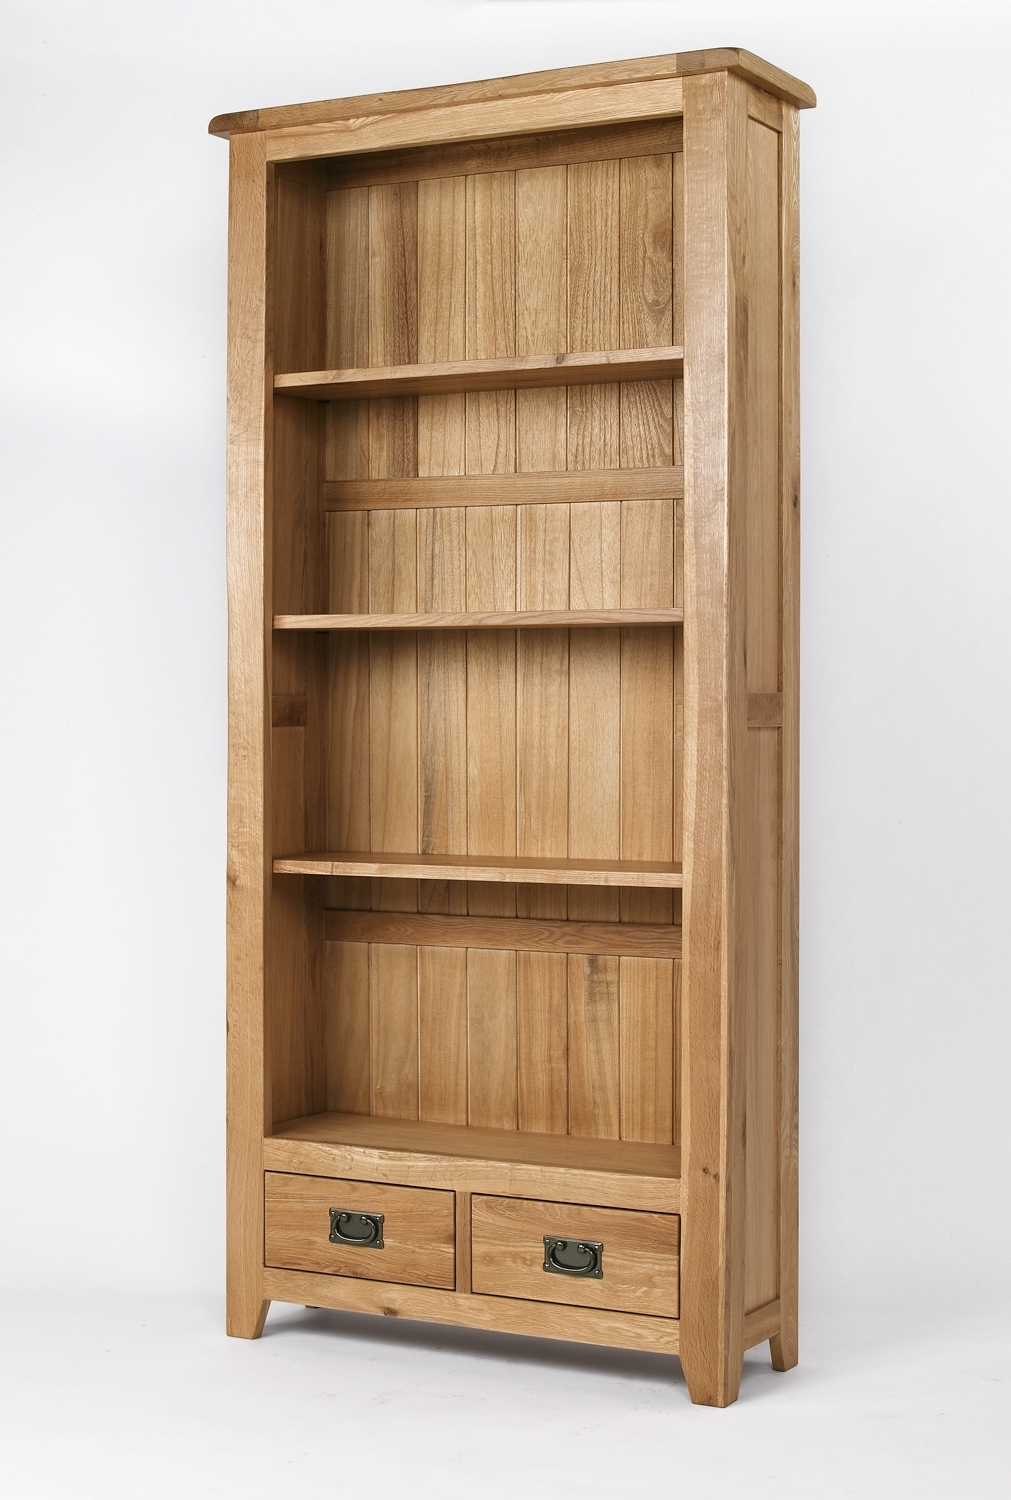 Wooden Bookcases Within Most Recently Released Bookcases Ideas: Stylish Wooden Bookcase For Living Room Bookcases (View 15 of 15)